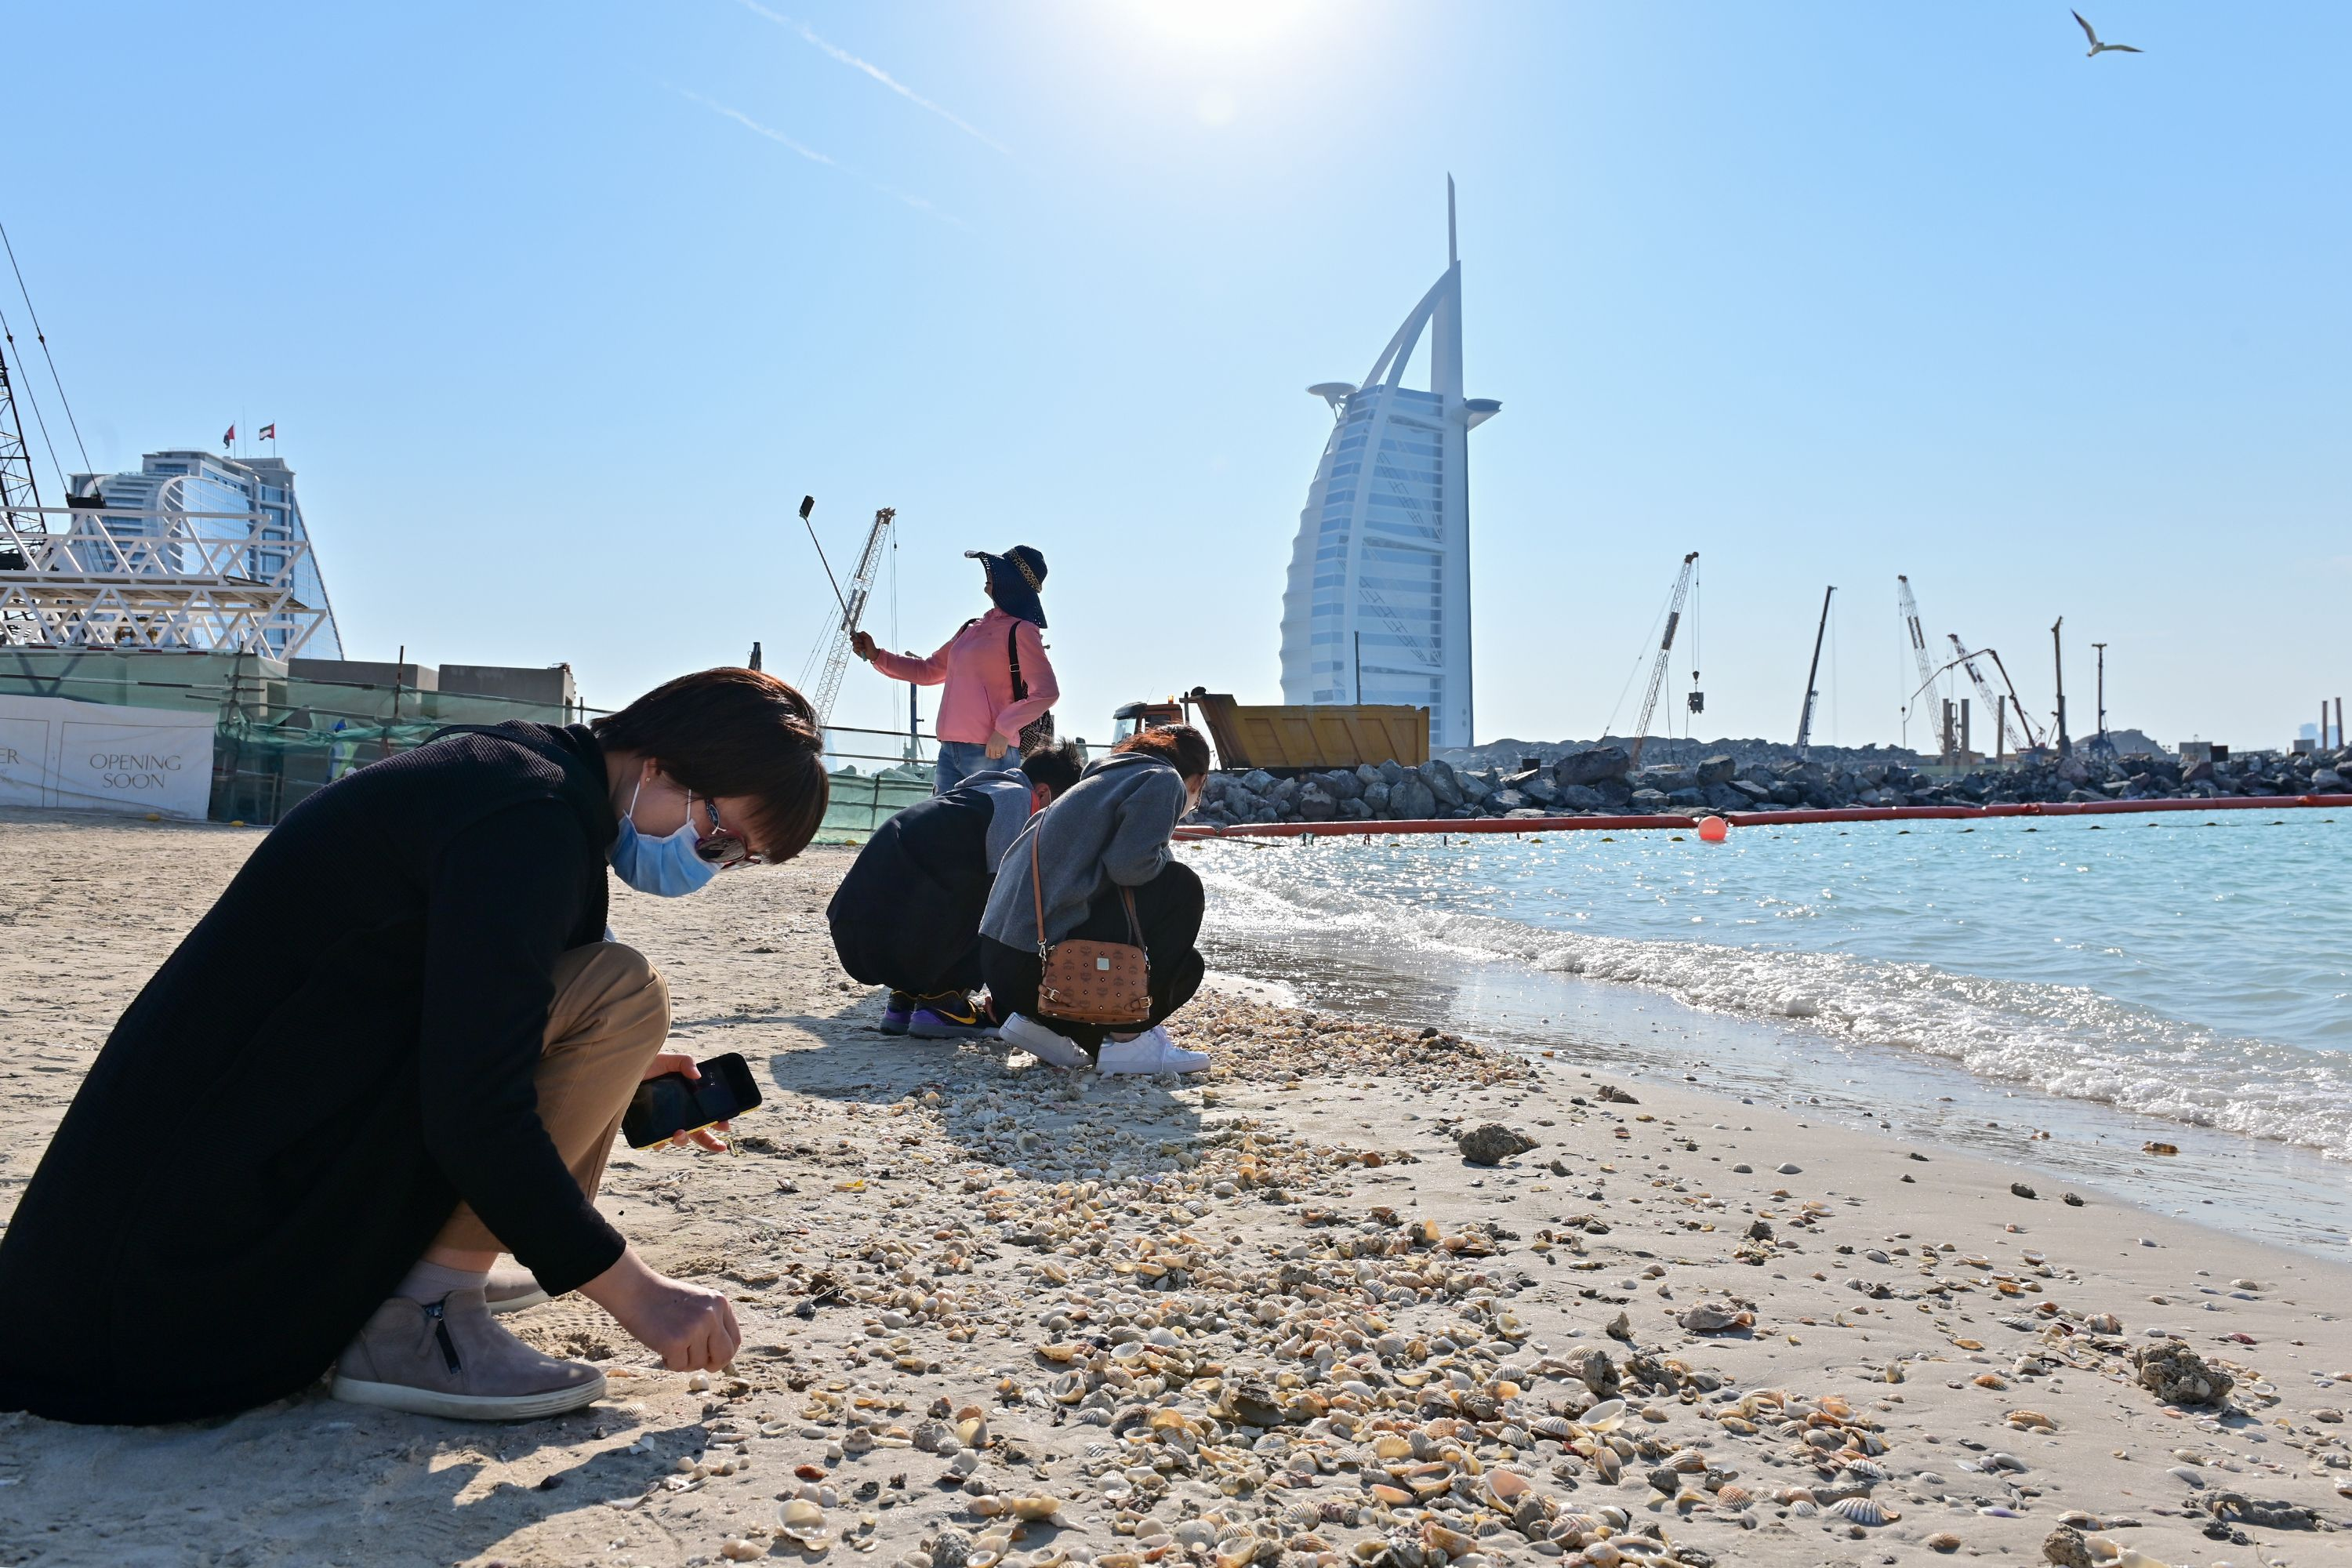 Tourists wearing surgical masks search for seashells on a beach next to Burj Al Arab in Dubai.